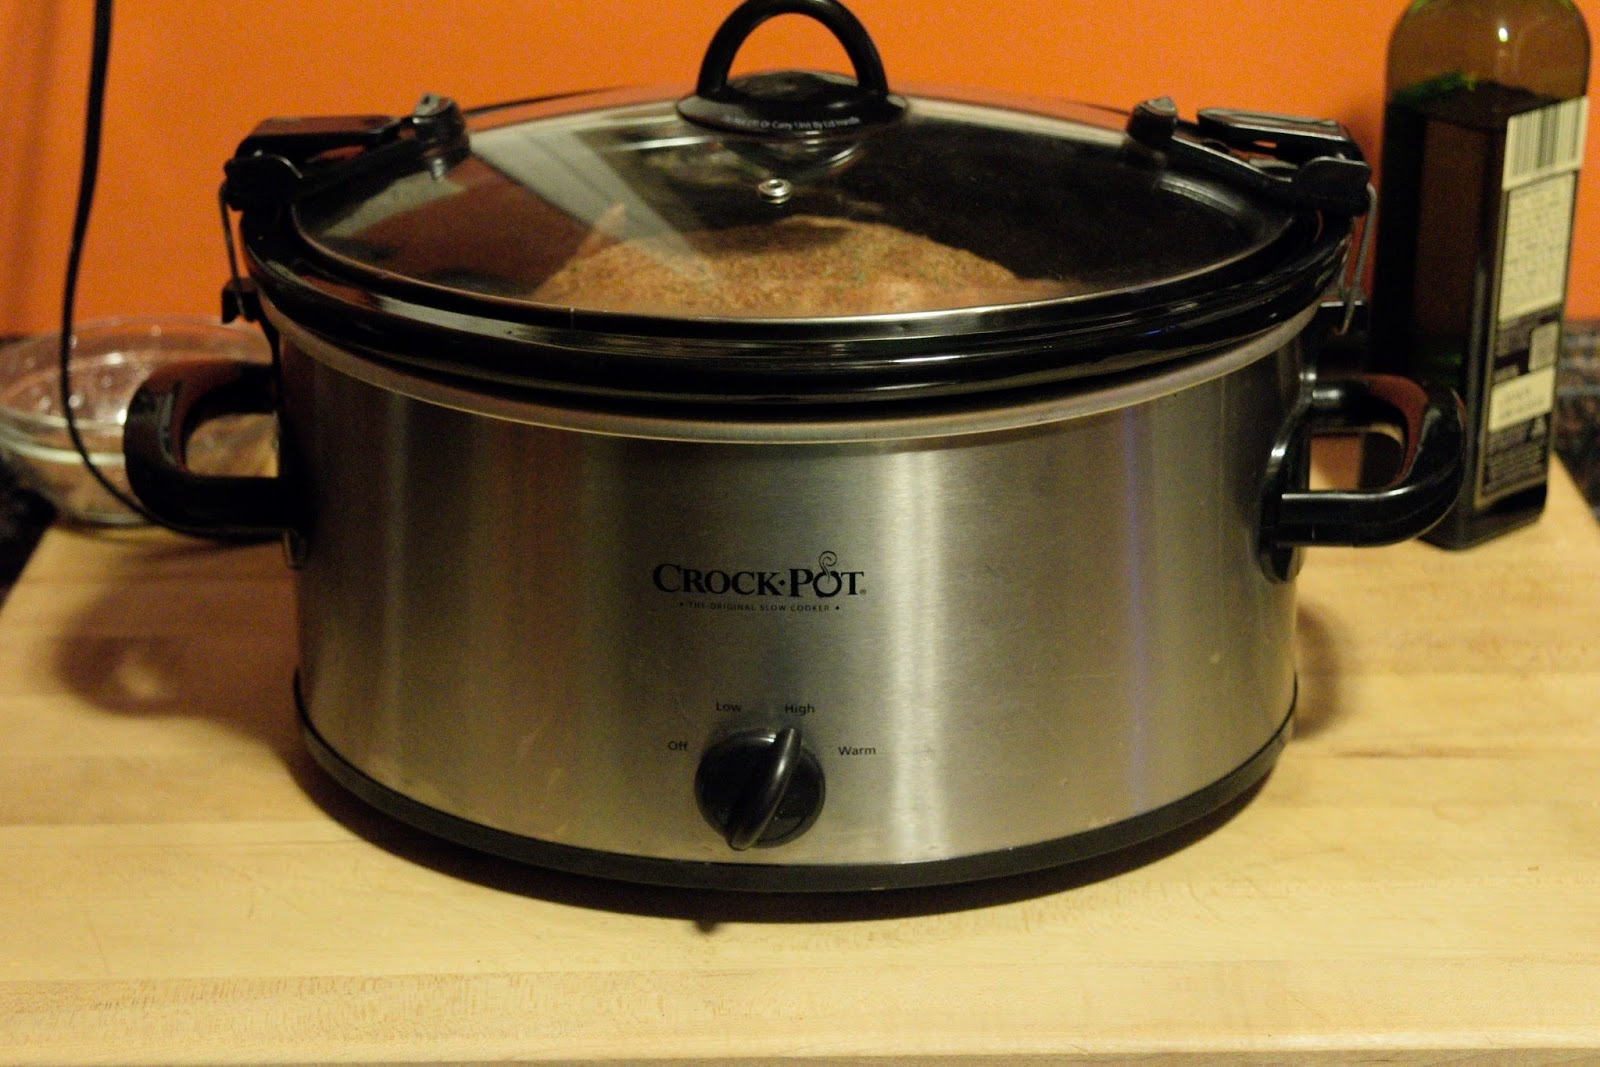 The Crock Pot On The Counted, With The Lid On, Turned To High